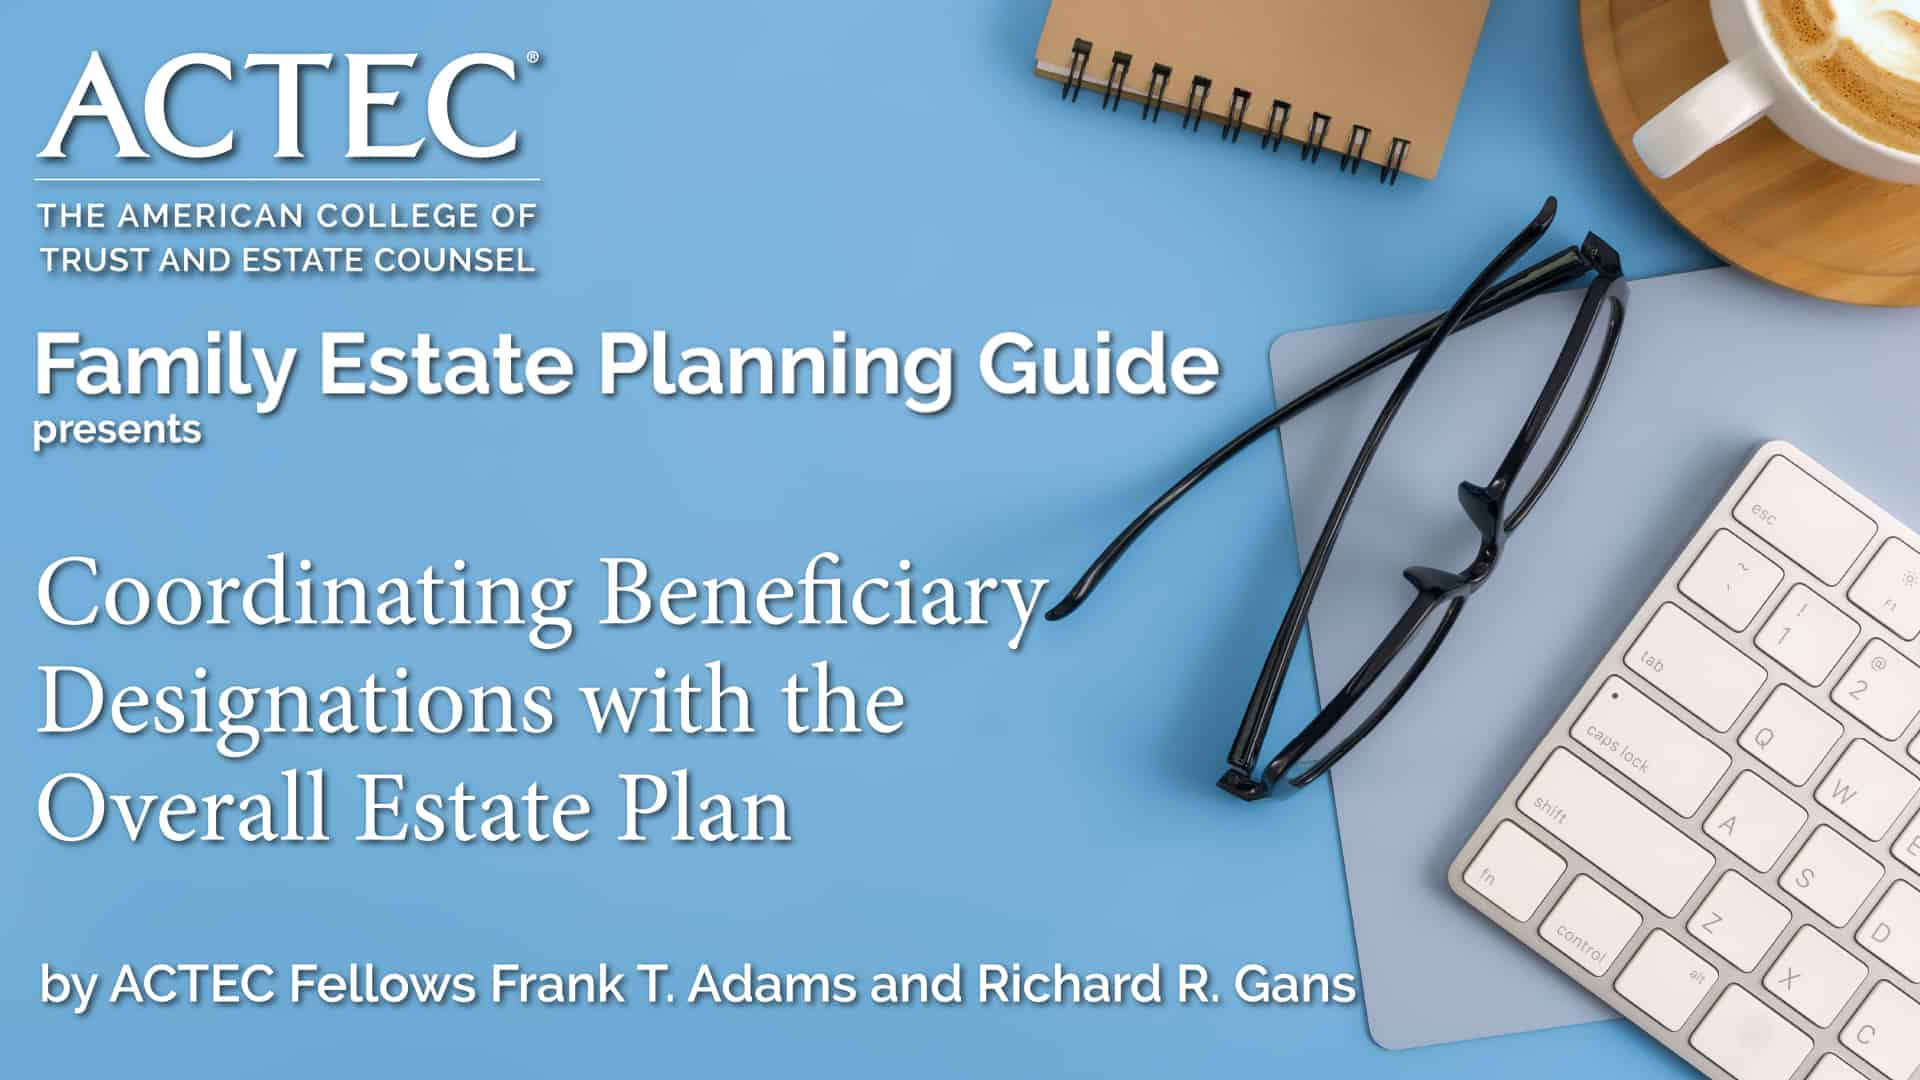 Coordinating Beneficiary Designations with the Overall Estate Plan